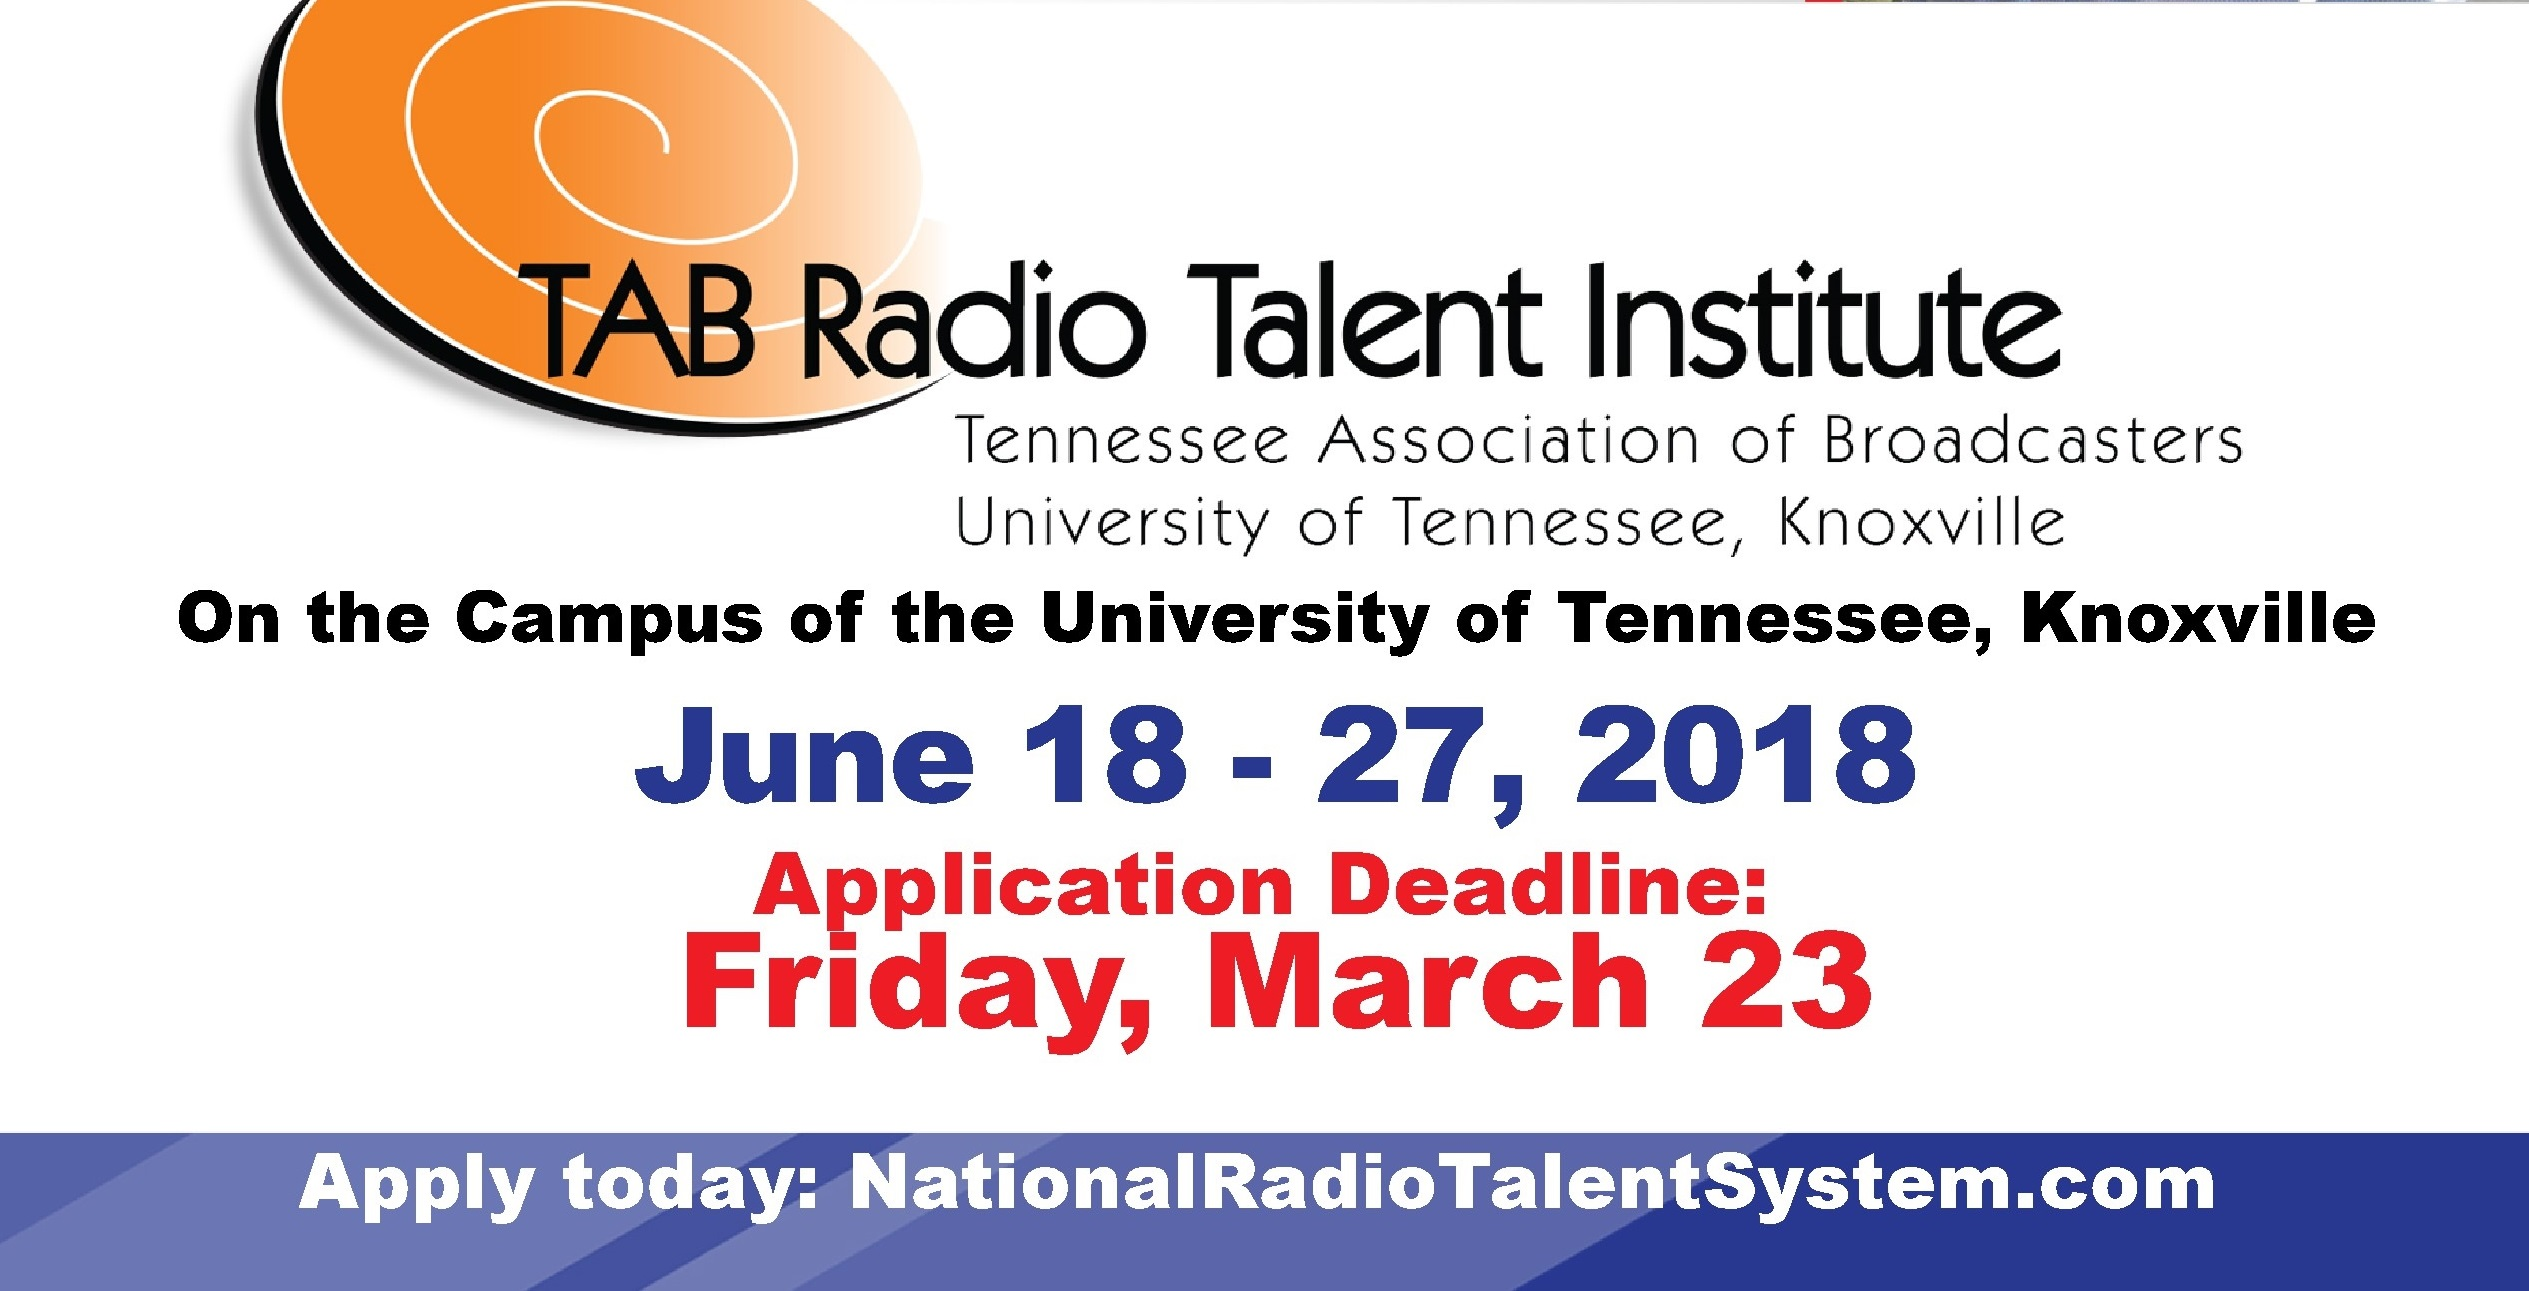 Attn: All students and recent grads! Last day to apply for the Radio Talent Institute is Friday, March 23rd!